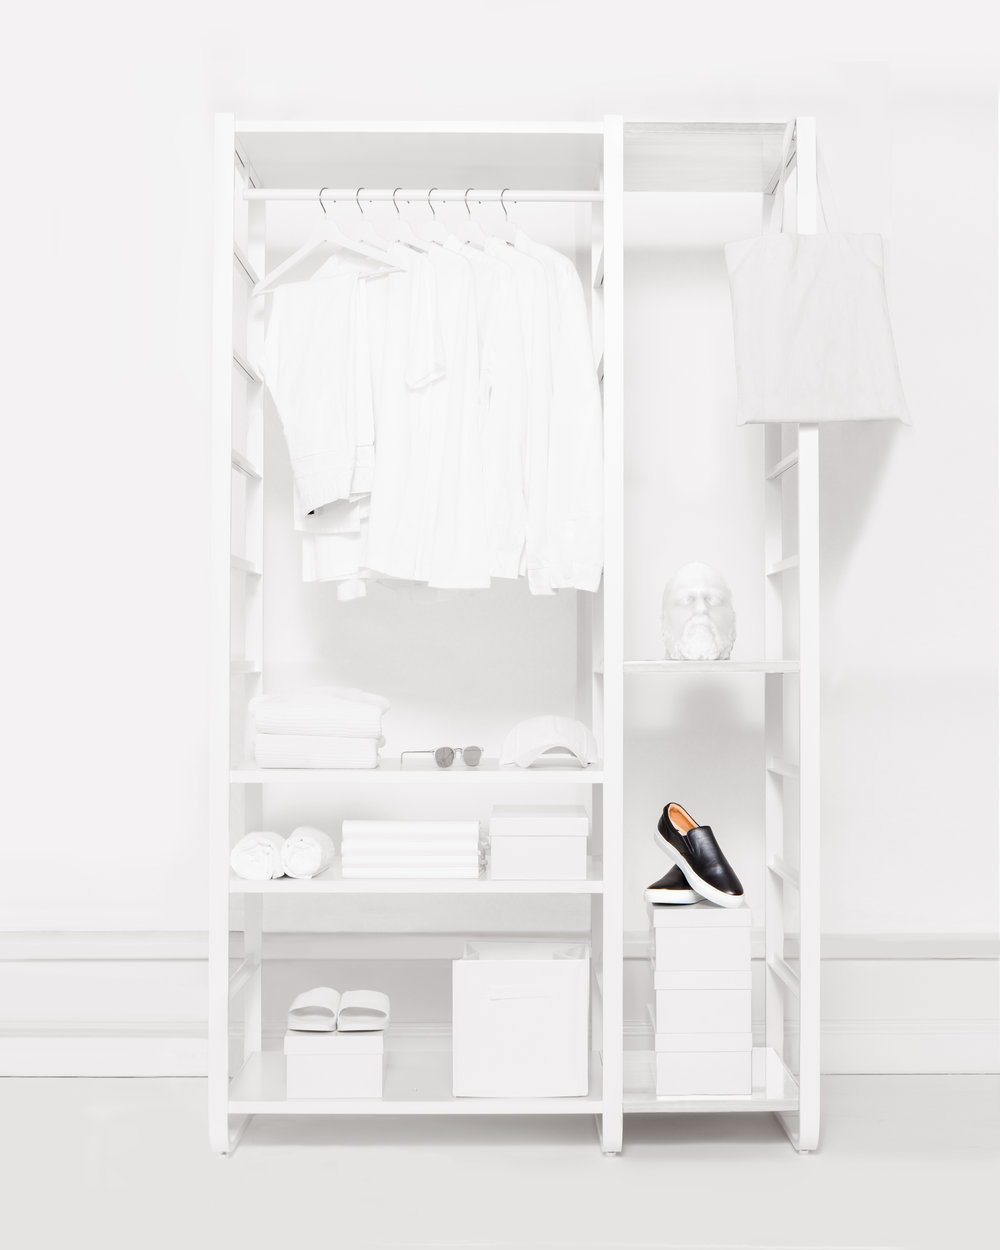 m-163-Build Your Closet-05.jpg